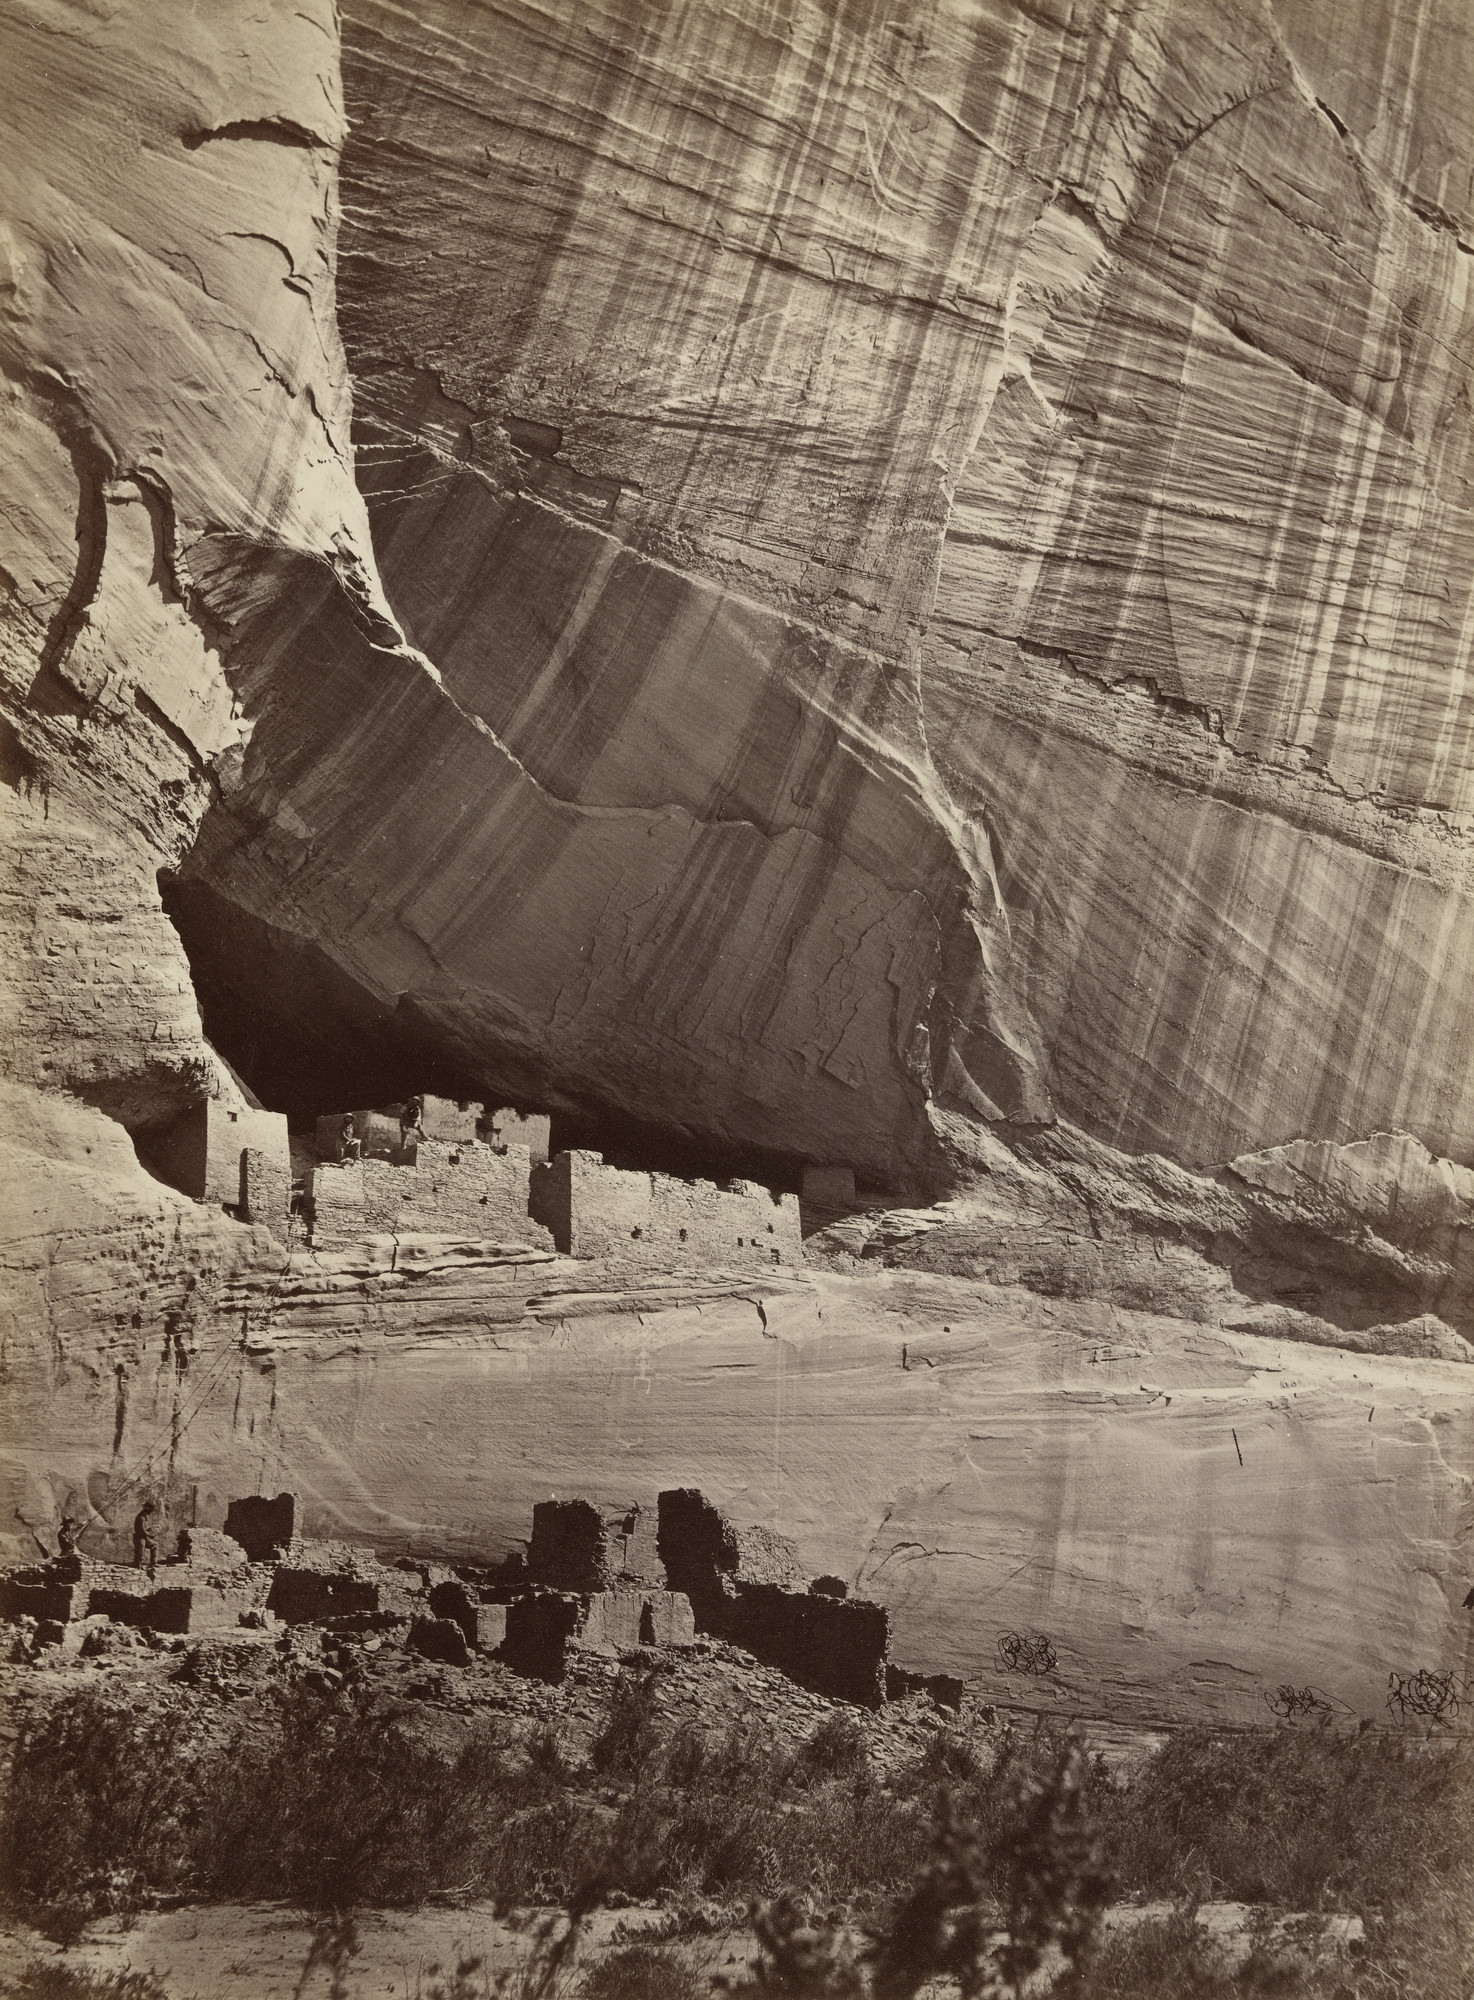 Timothy O'Sullivan. Ancient Ruins in the Cañon de Chelle, New Mexico. In a Niche Fifty Feet Above Present Cañon Bed. 1873